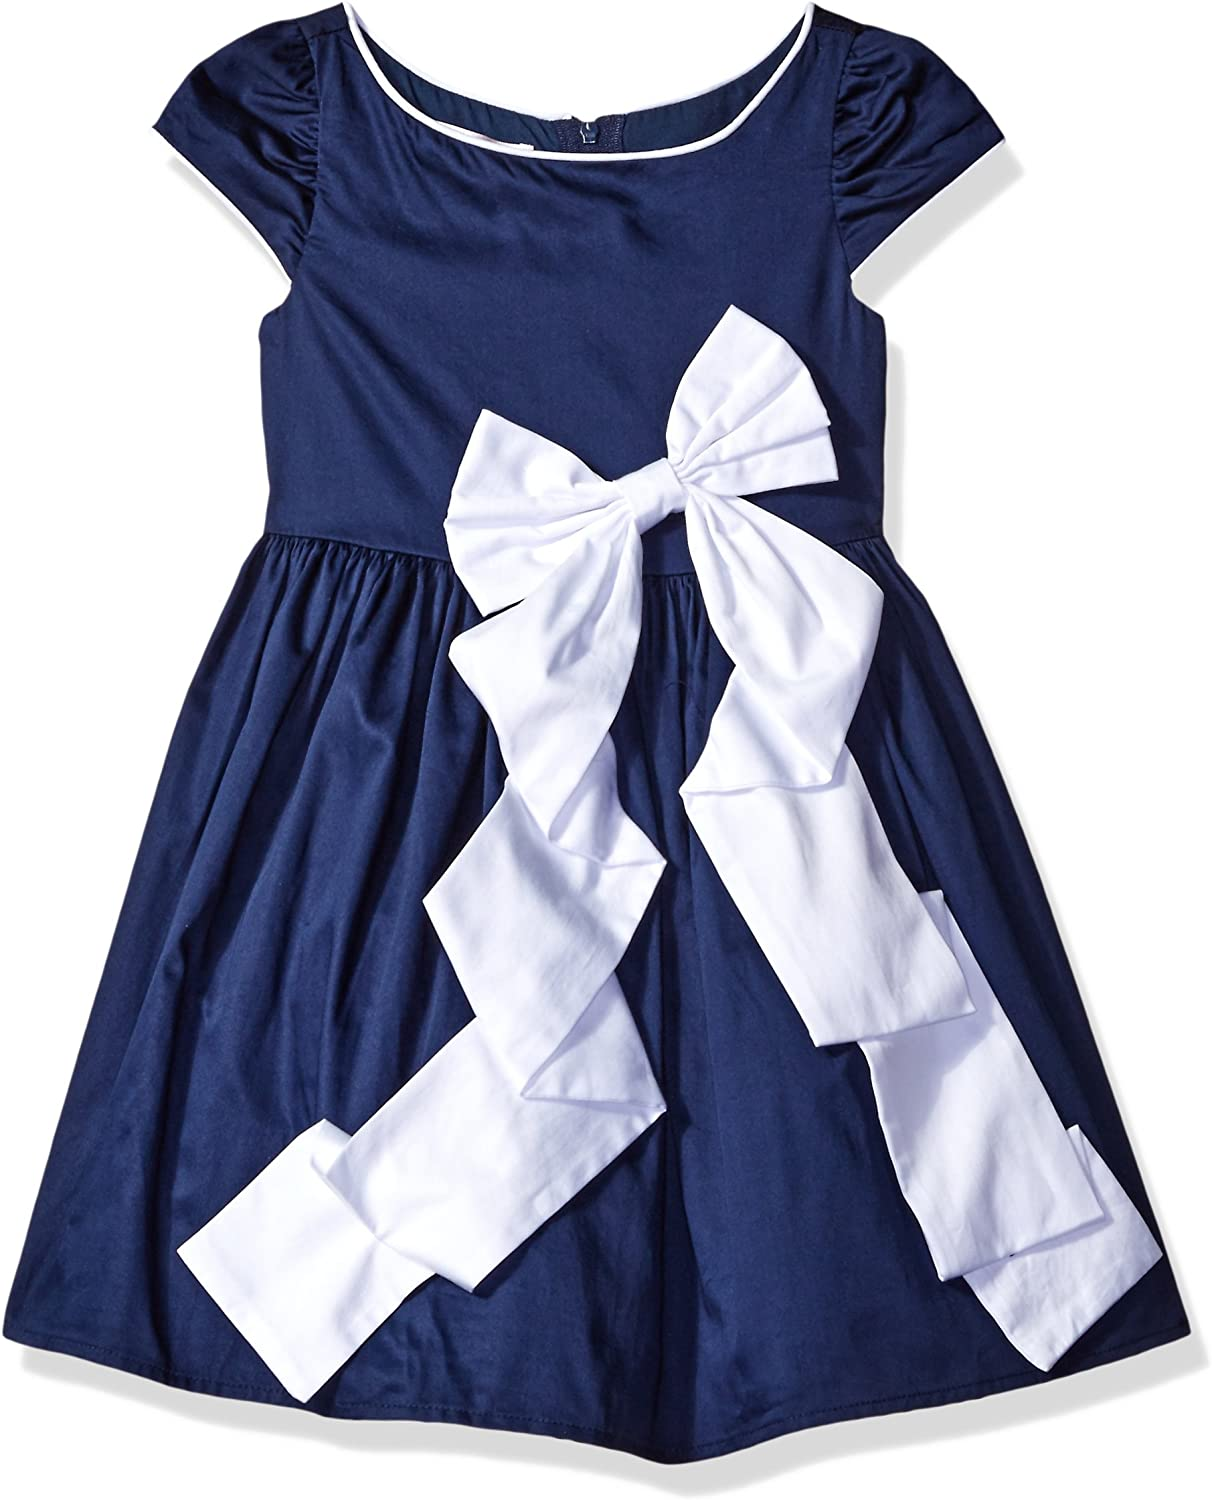 Biscotti Girls' Rose Reflection Navy Dress with White Bow